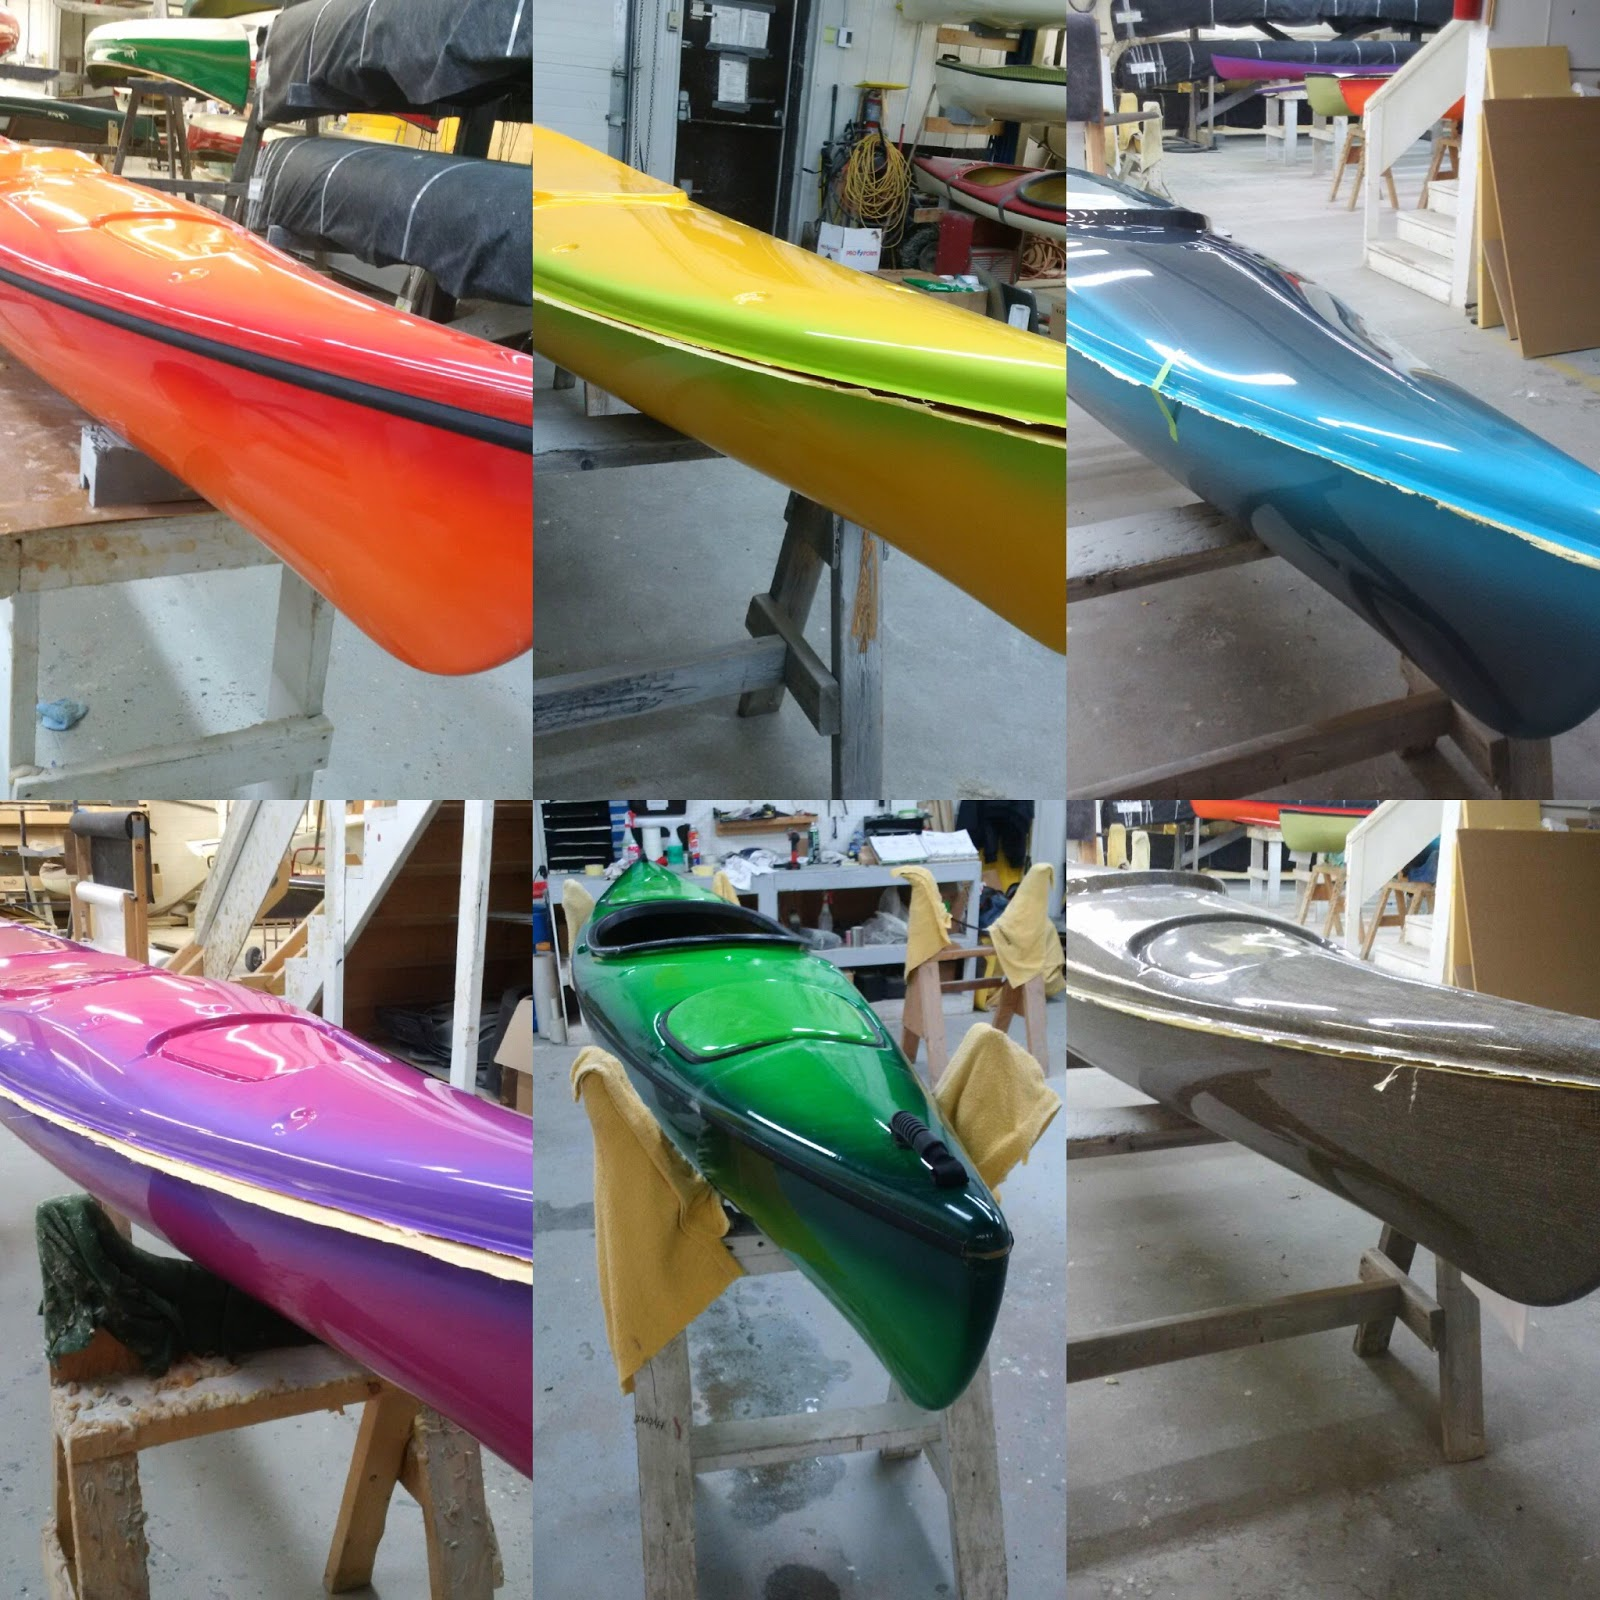 Swift Outdoor Centre: The 2016 Swift Canoe & Kayak Product